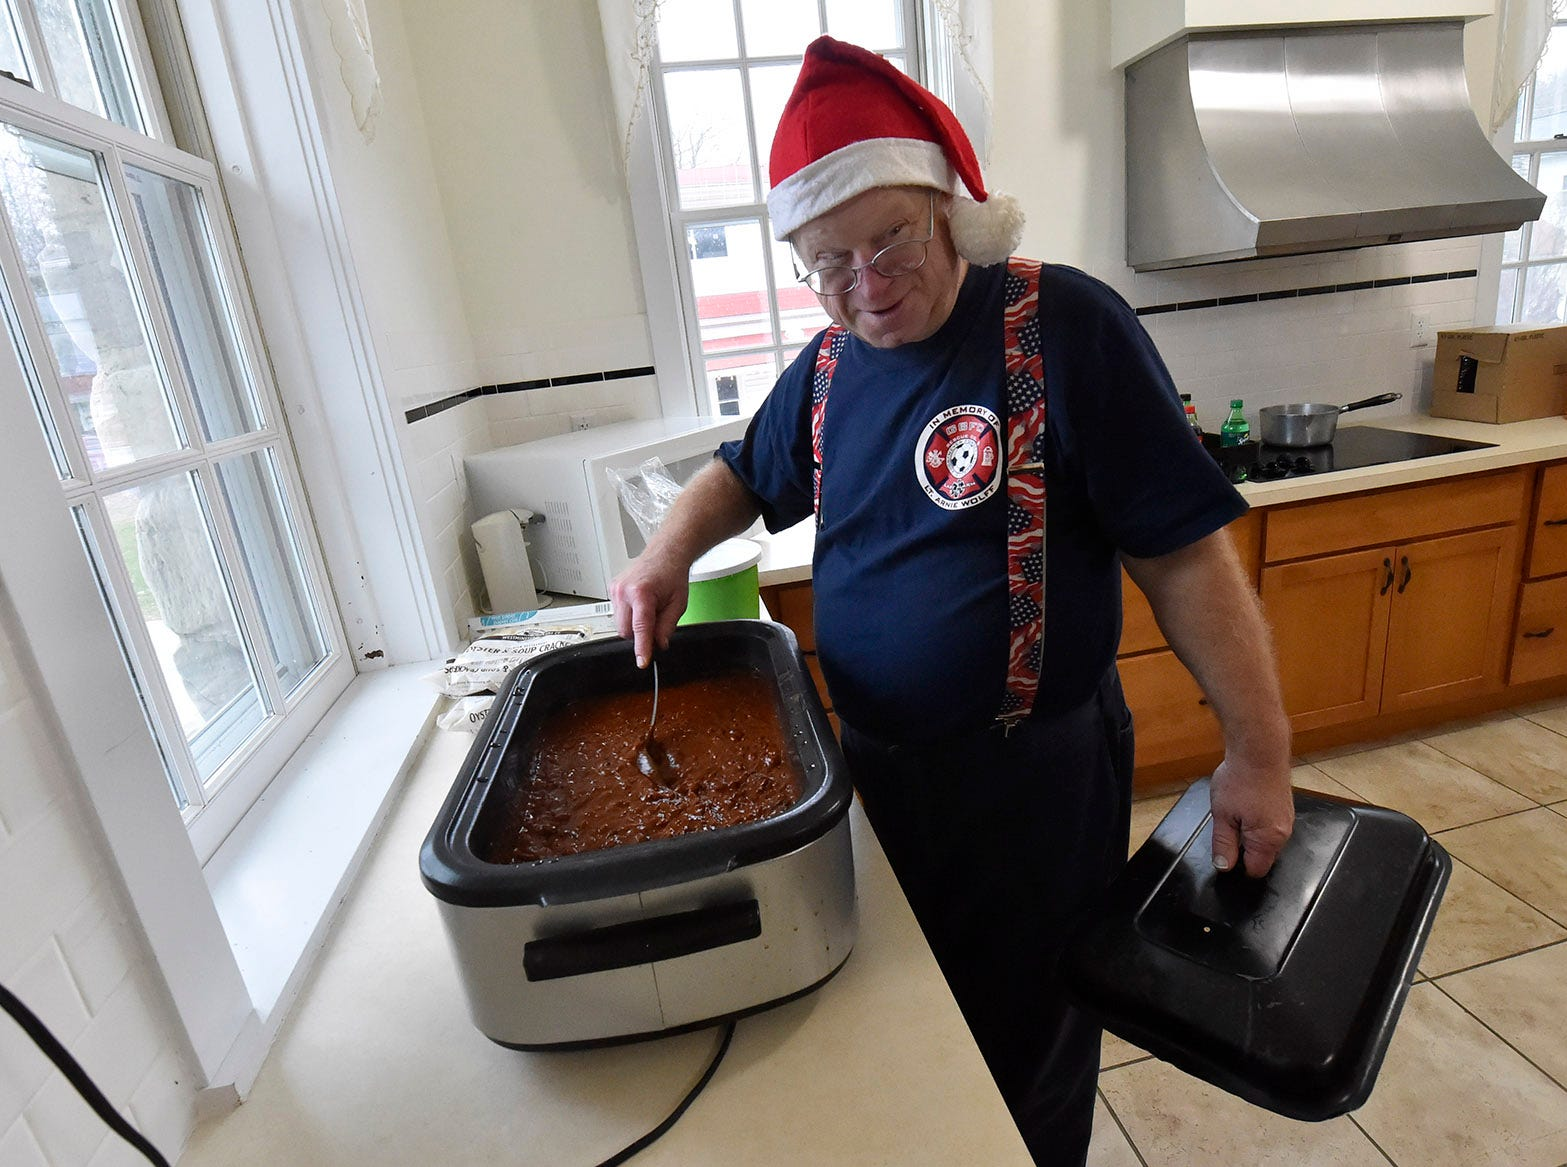 Scotty Weborg of Ephraim keeps an eye on the fund-raising chili donated by The Chef's Hat of Ephraim during Christmas in the Village in Ephraim on Saturday, Dec. 1, 2018. Tina M. Gohr/USA TODAY NETWORK-Wisconsin